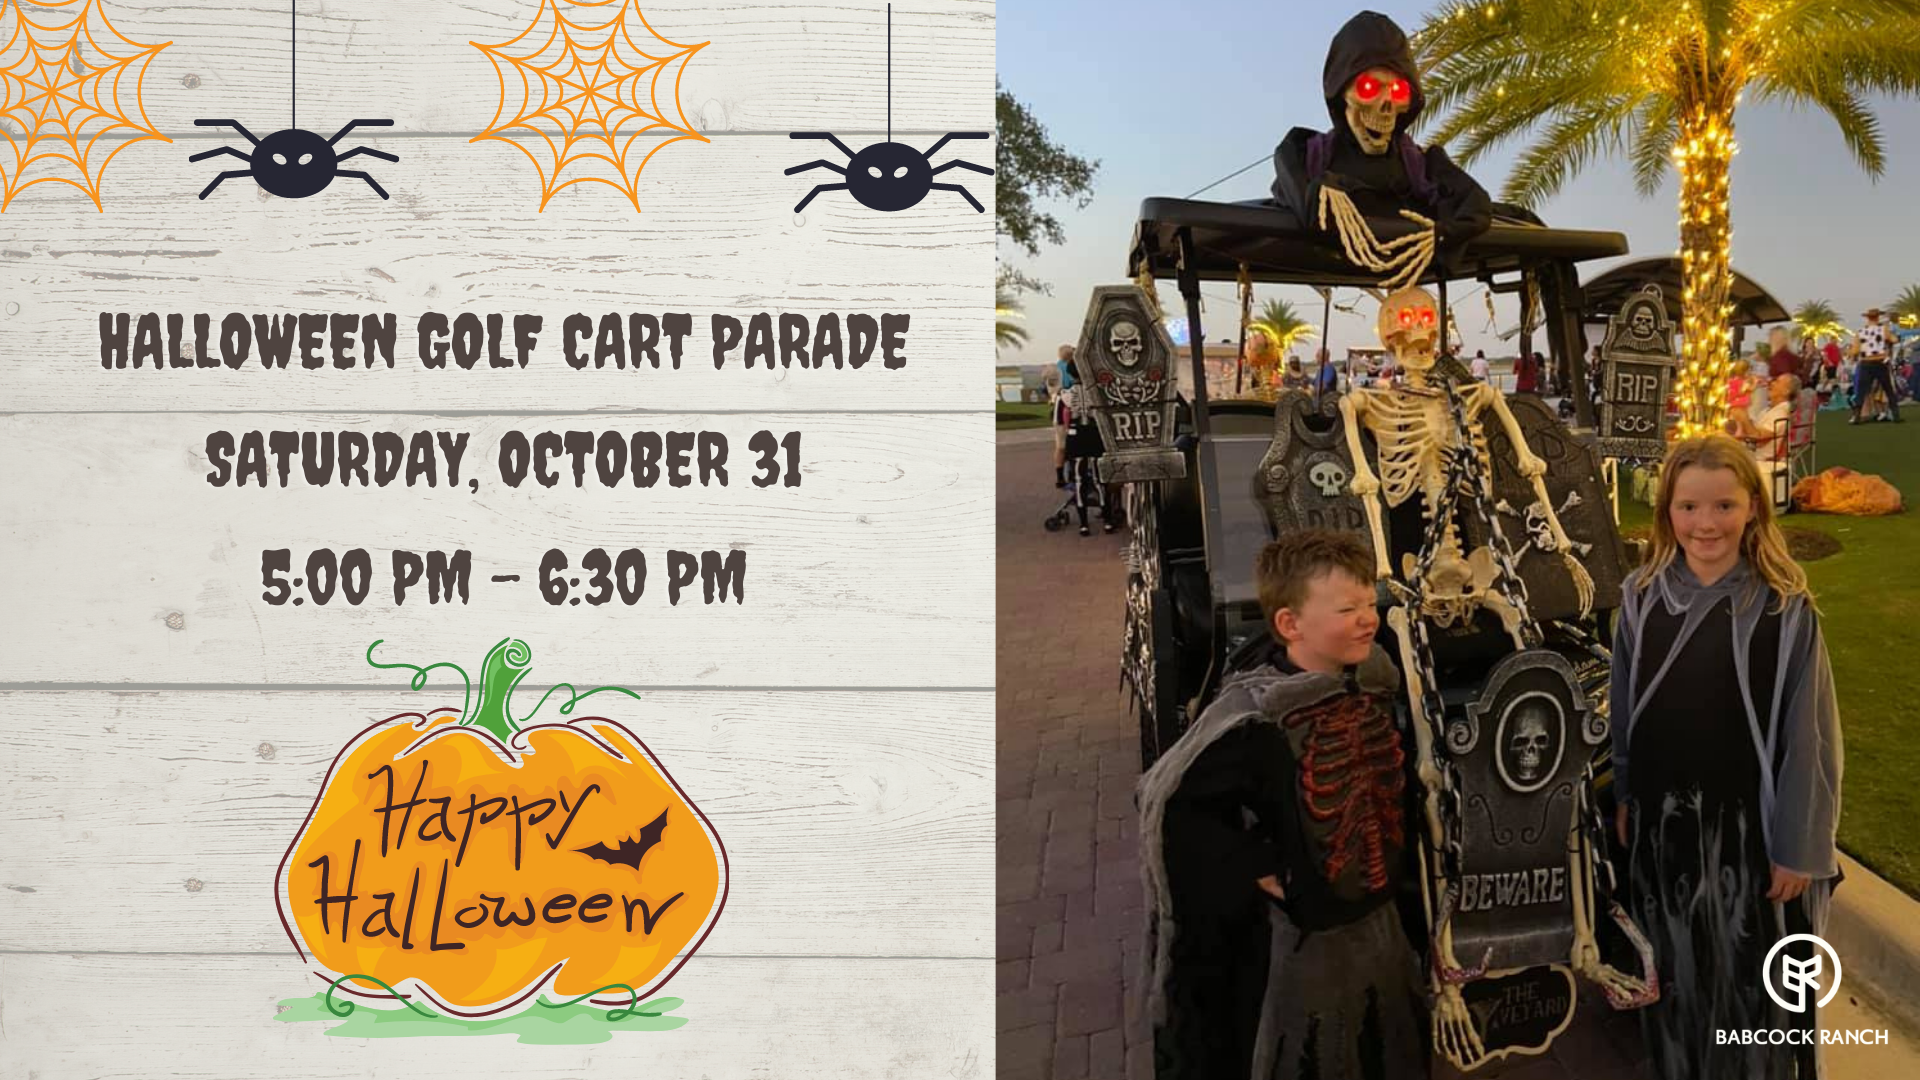 hALLOWEEN Golf Cart Parade